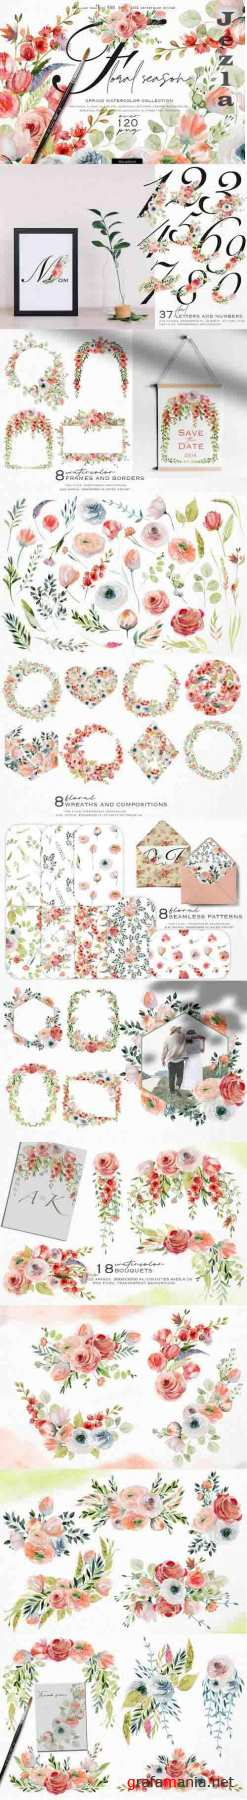 Floral season collection - 1232348